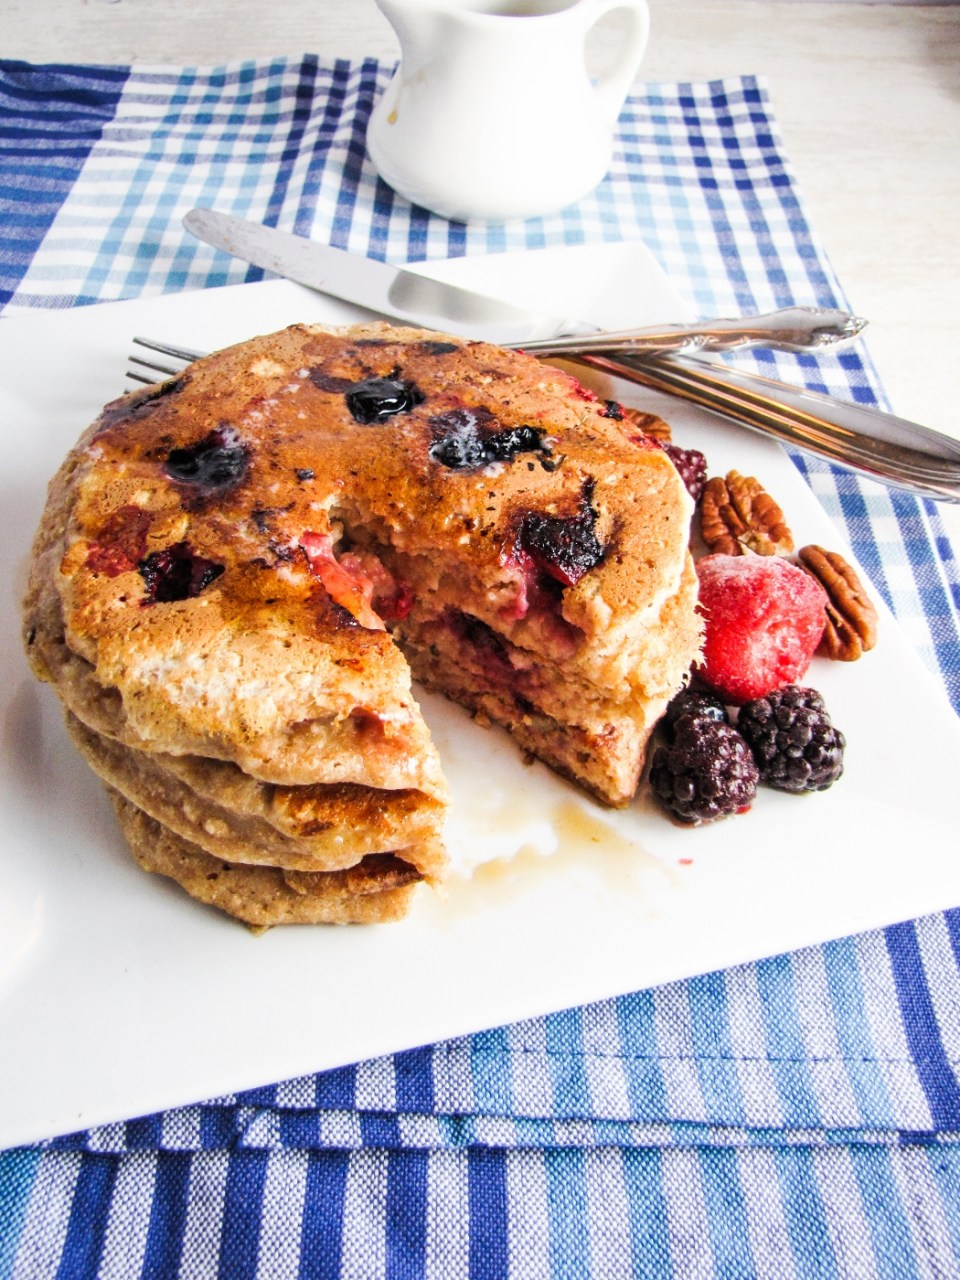 Healthy Winter Recipes - Whole Wheat Fruit and Nut Pancakes